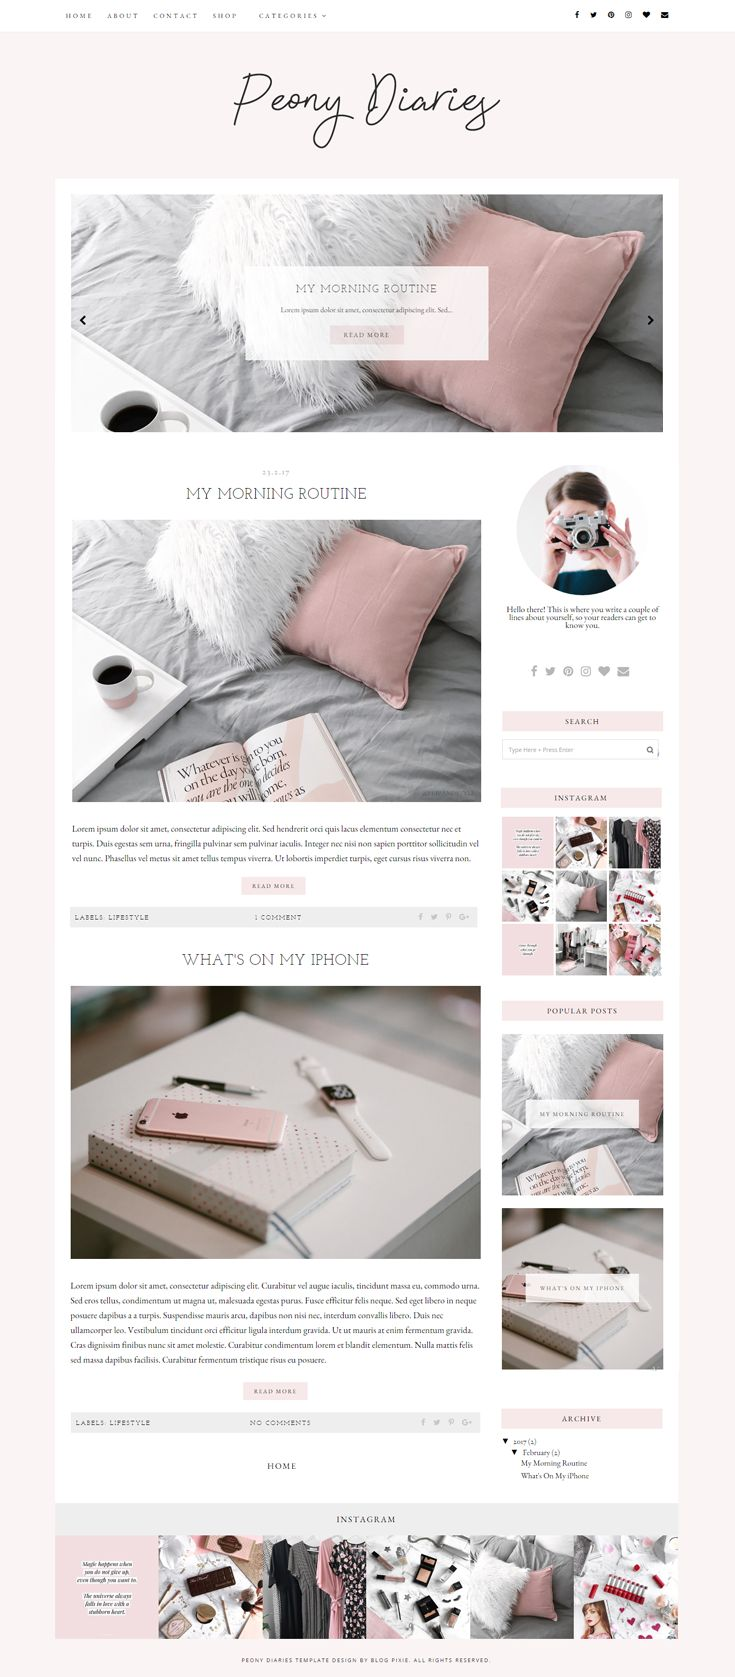 Peony Diaries   A responsive Blogger template   Premade, feminine Blogger templates + blog themes by BlogPixie on Etsy